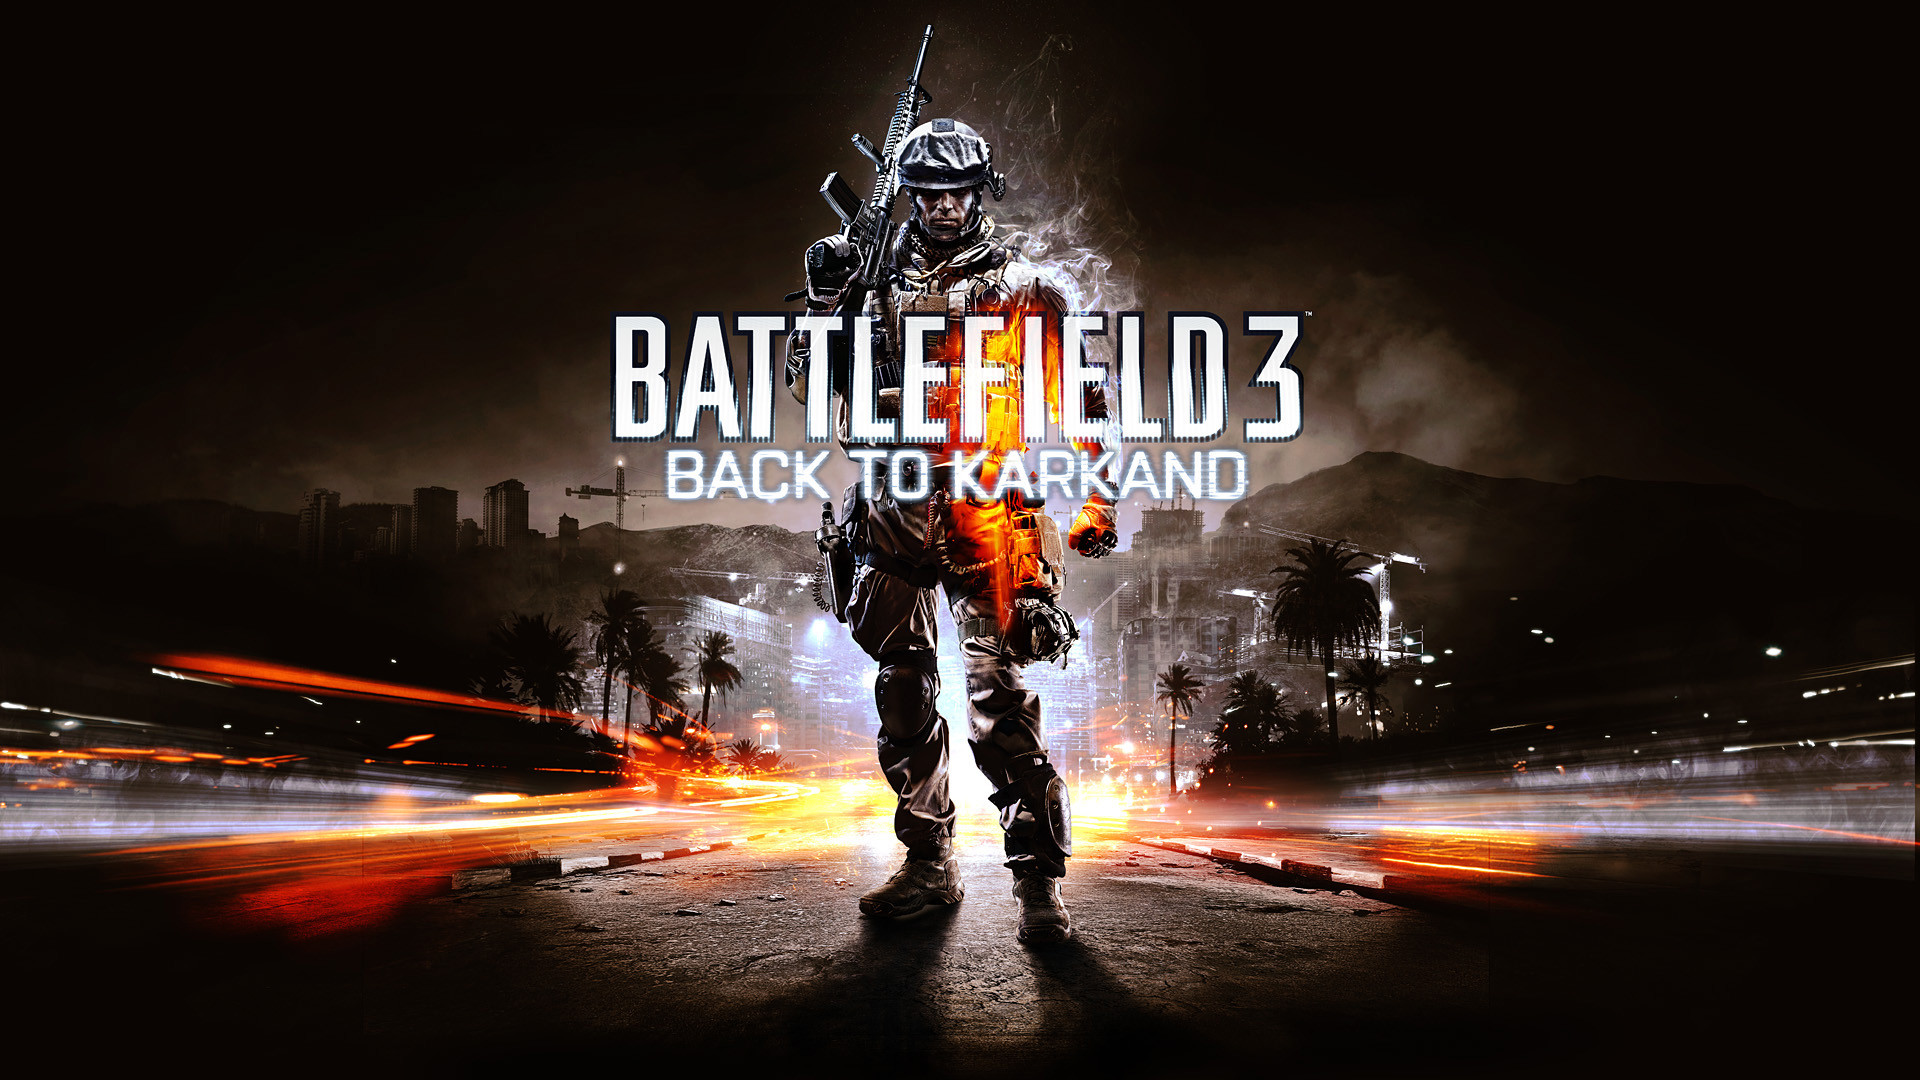 Res: 1920x1080, 14 (16 Amazing Battlefield 3 Theme HD Wallpapers)